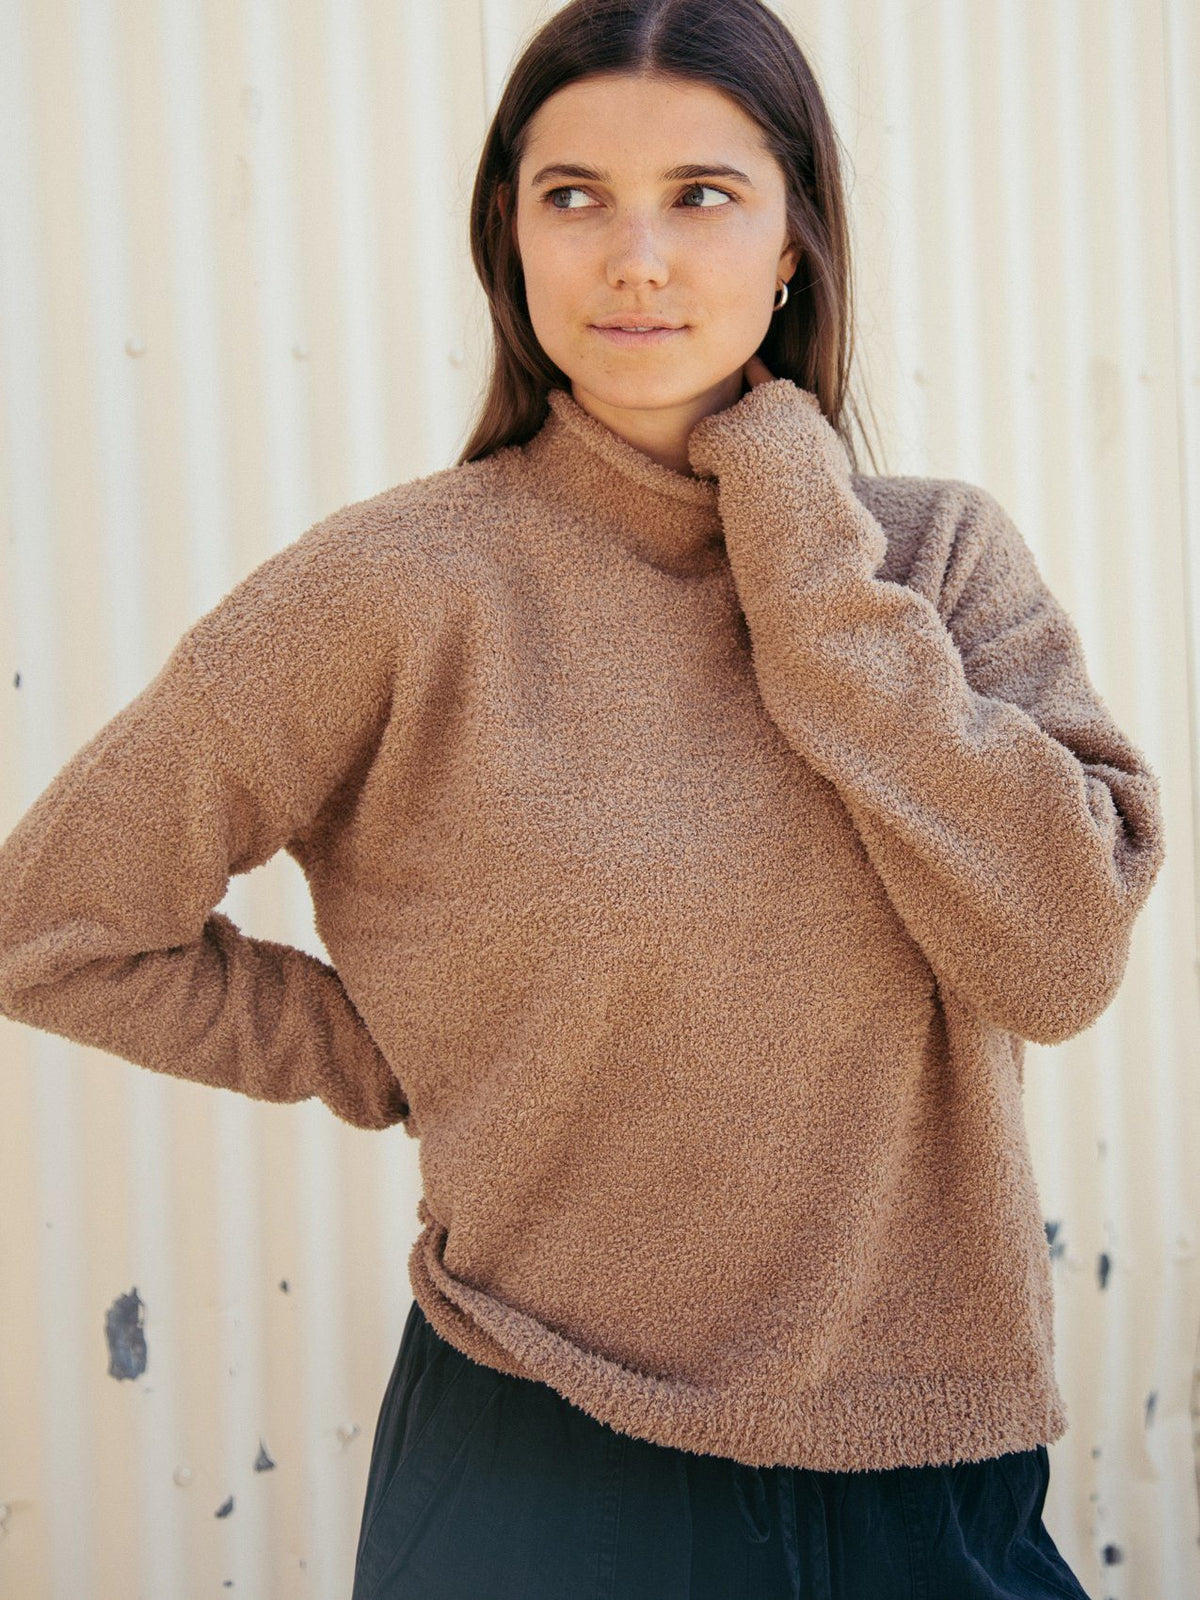 Mitzie Sweater Sweater Thread & Supply Mocha S